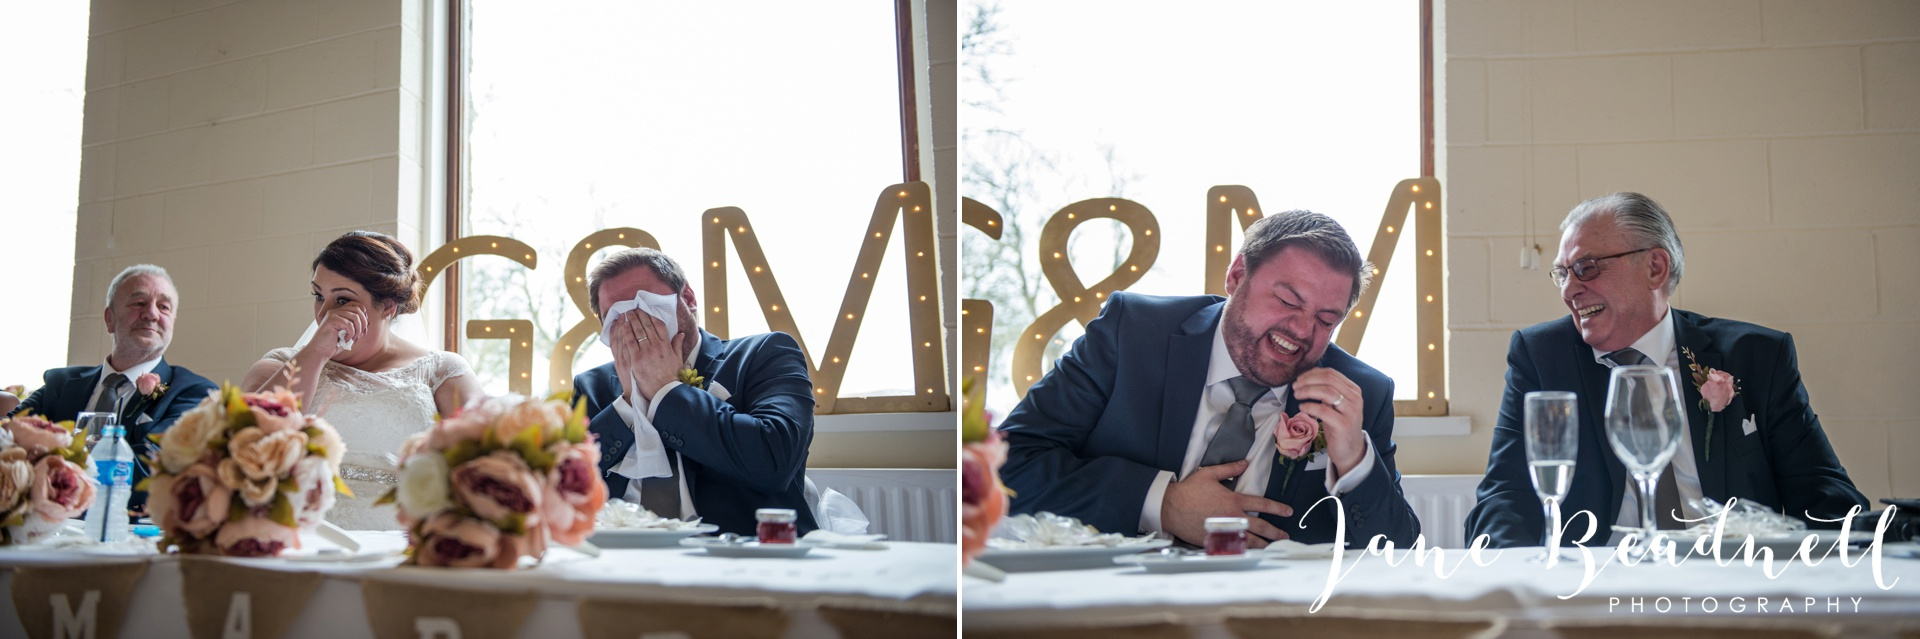 Cracoe Village Hall Wedding Photography by Jane Beadnell Photography fine art wedding photographer Yorkshire_0074